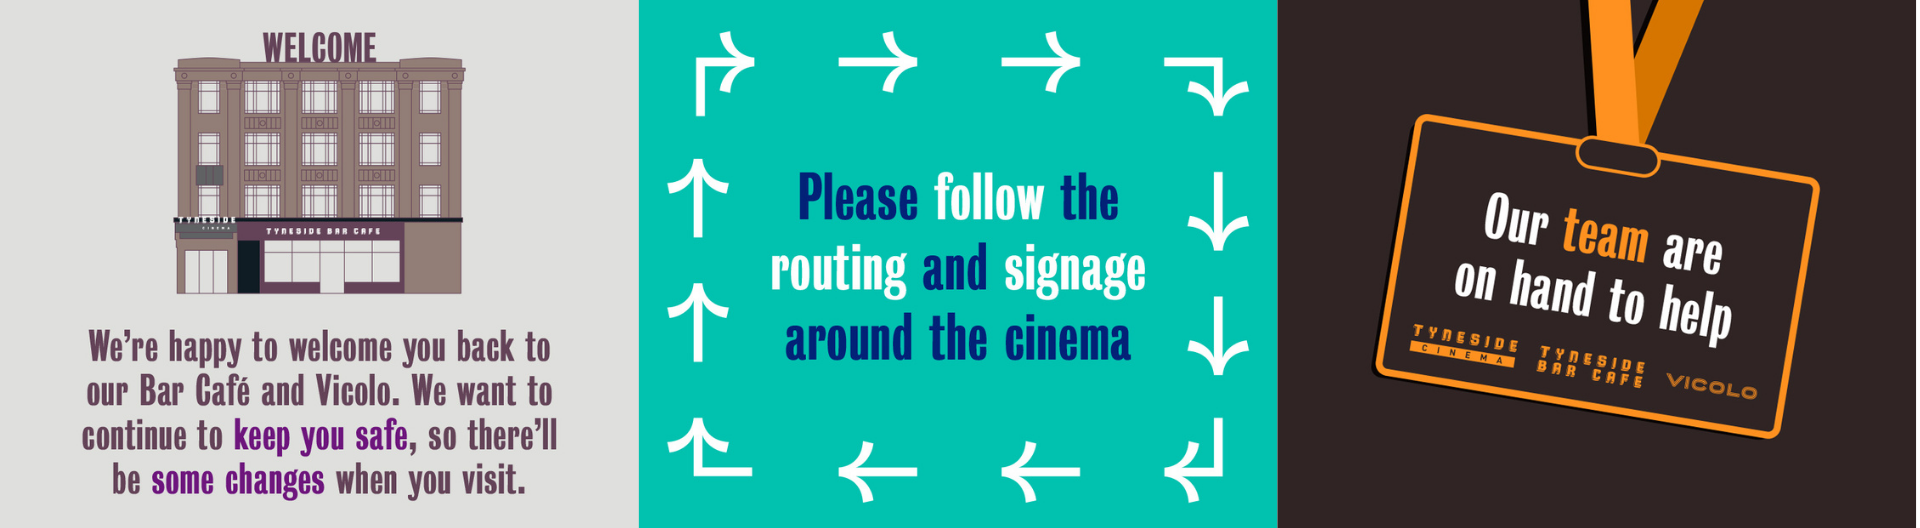 We're happy to welcme you back to our Bar Cafe and Vicolo. We want to continue to keep you safe, so there'll be some changes when you visit. Please Follow the routing and signage around the cinema. Our team are on hand to help.